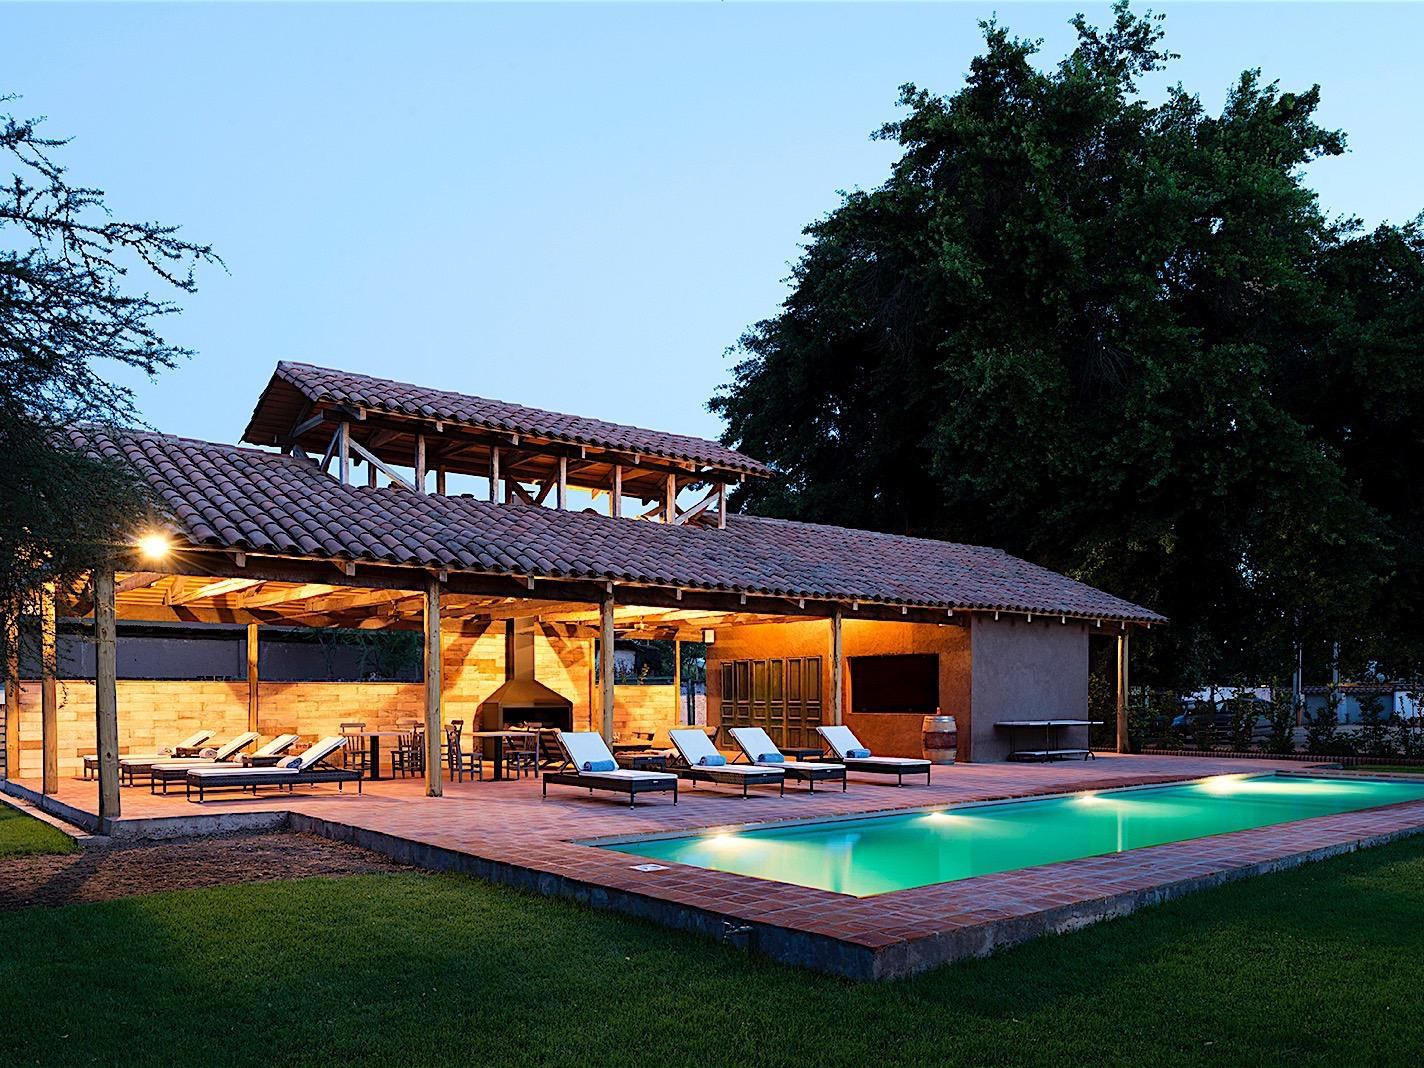 Pool house & lounge area with sunbeds at Noi Blend Colchagua